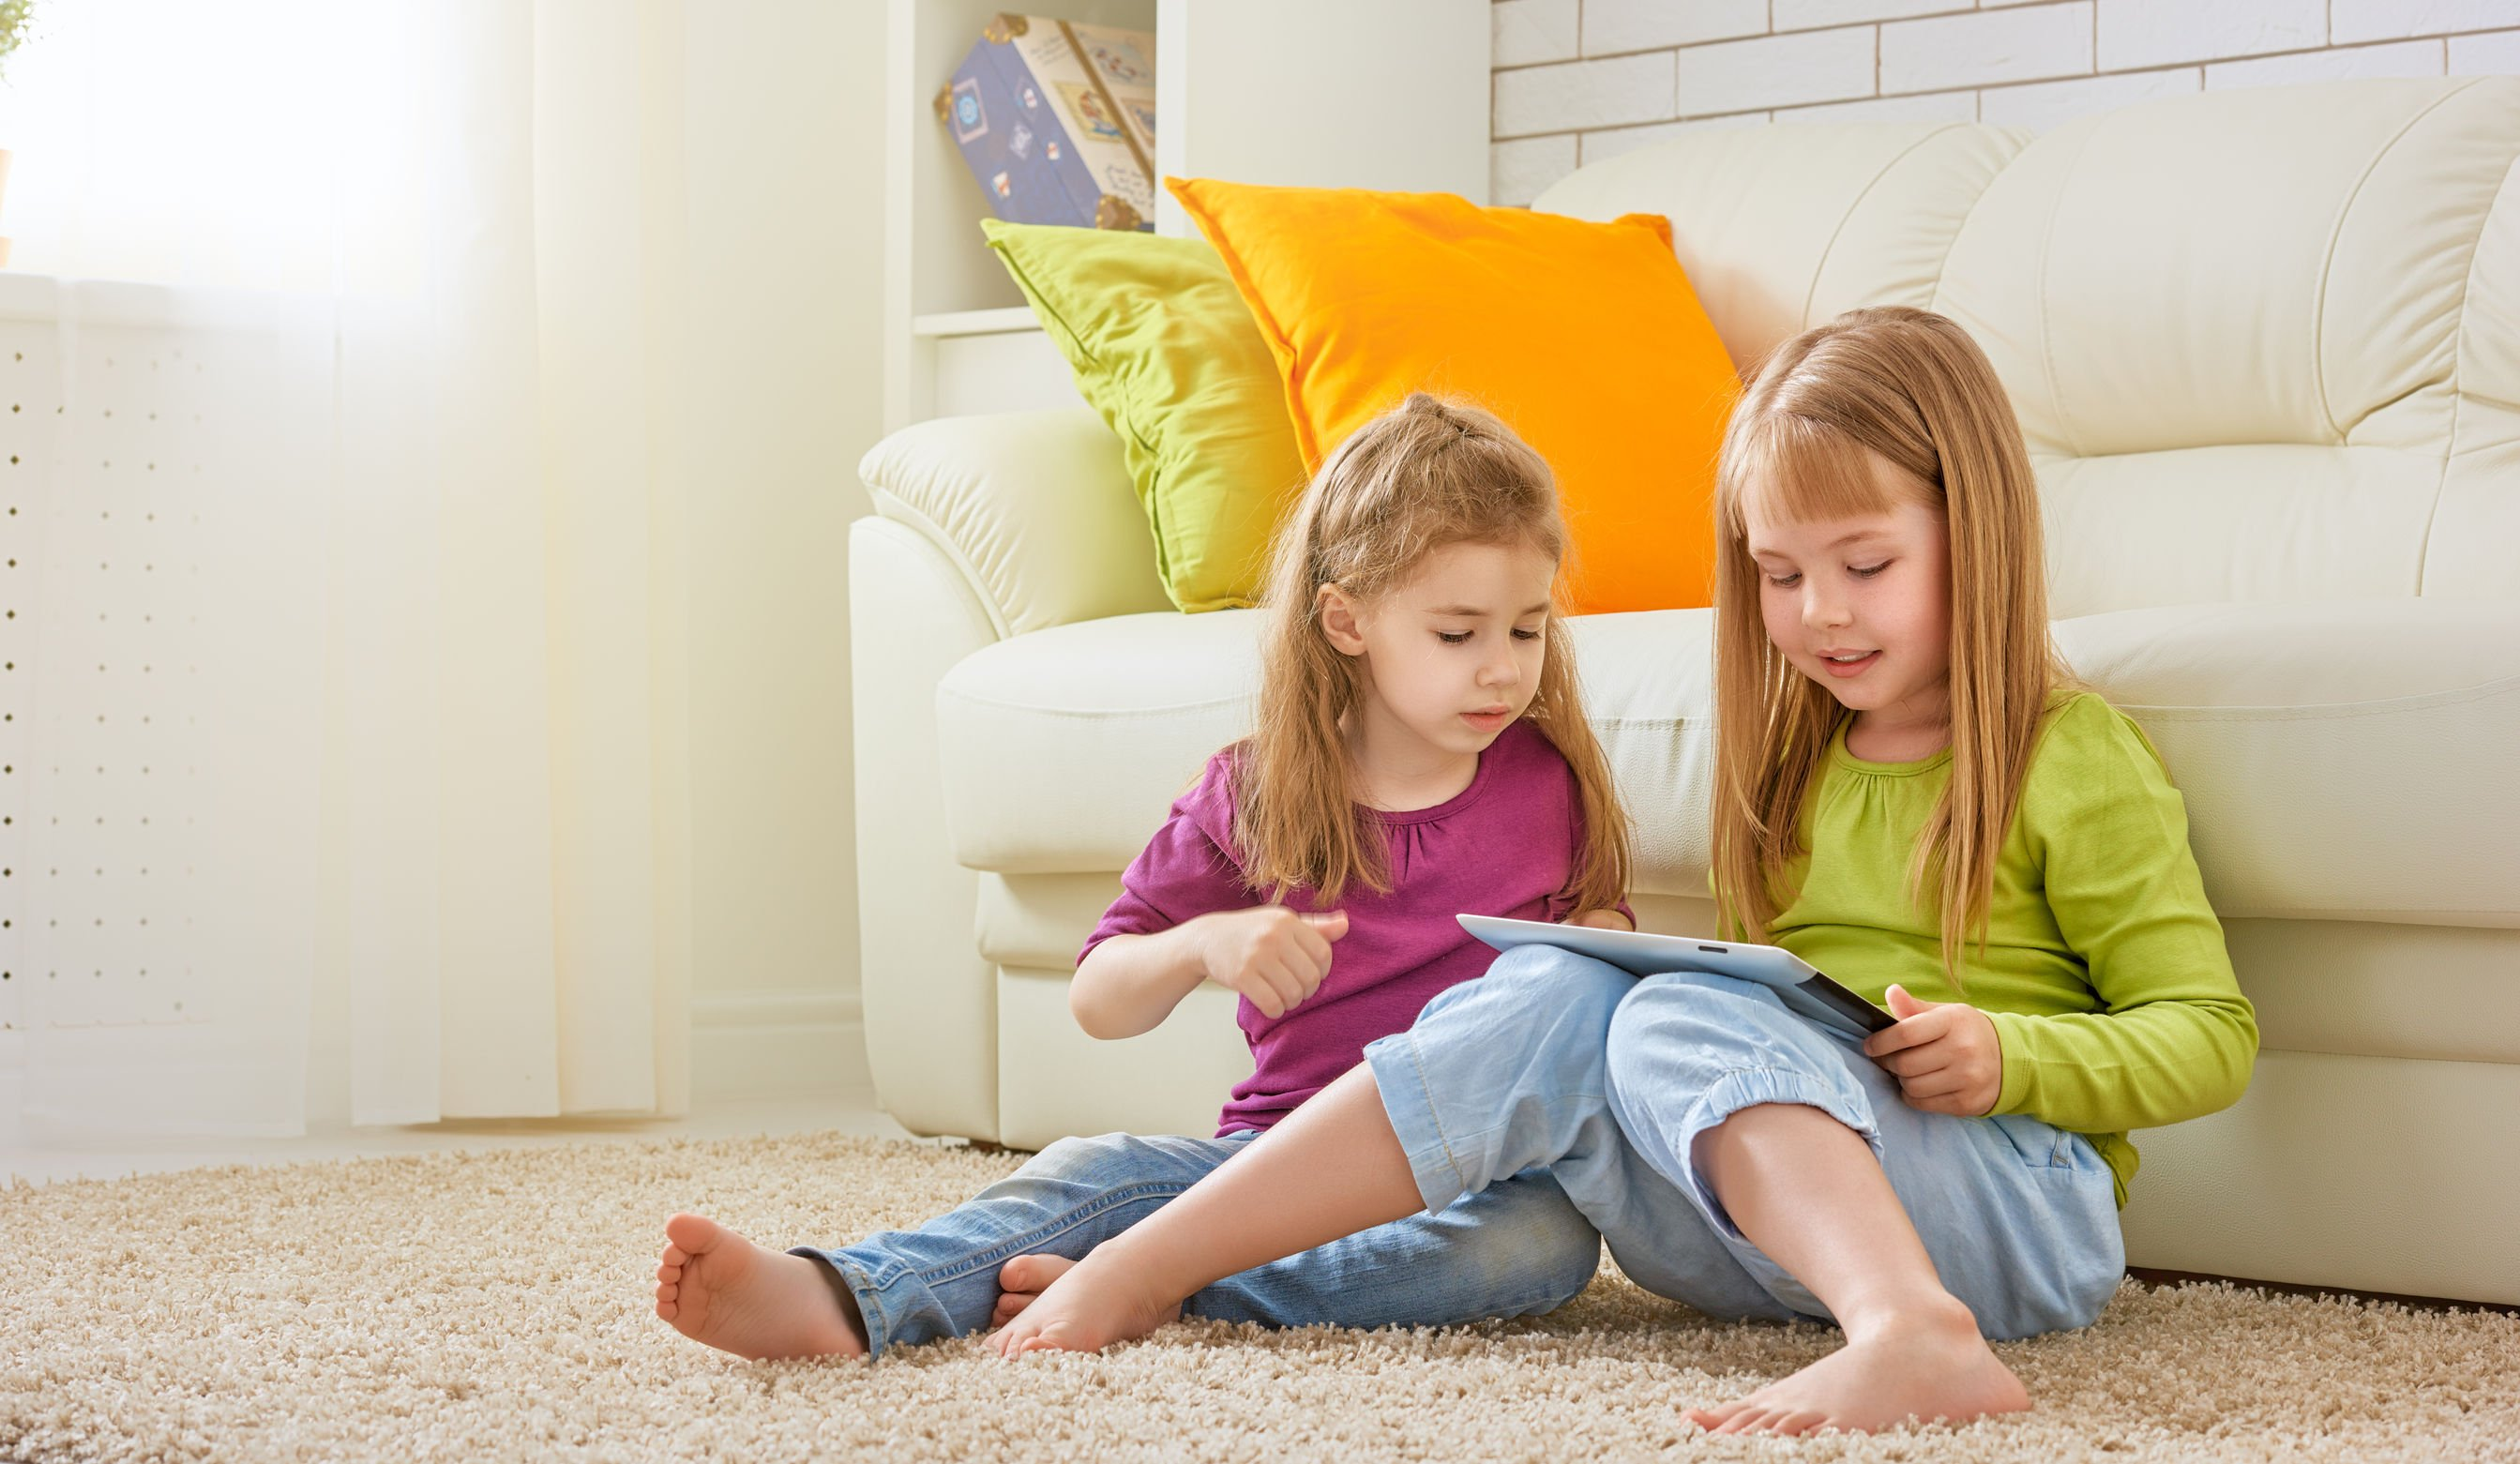 A doctor we spoke with said the feeling kids get from gaming platforms -- being rewarded with tokens or making it to the next level -- is similar to how a drug addict feels after a fix. (Source: choreograph via 123RF)